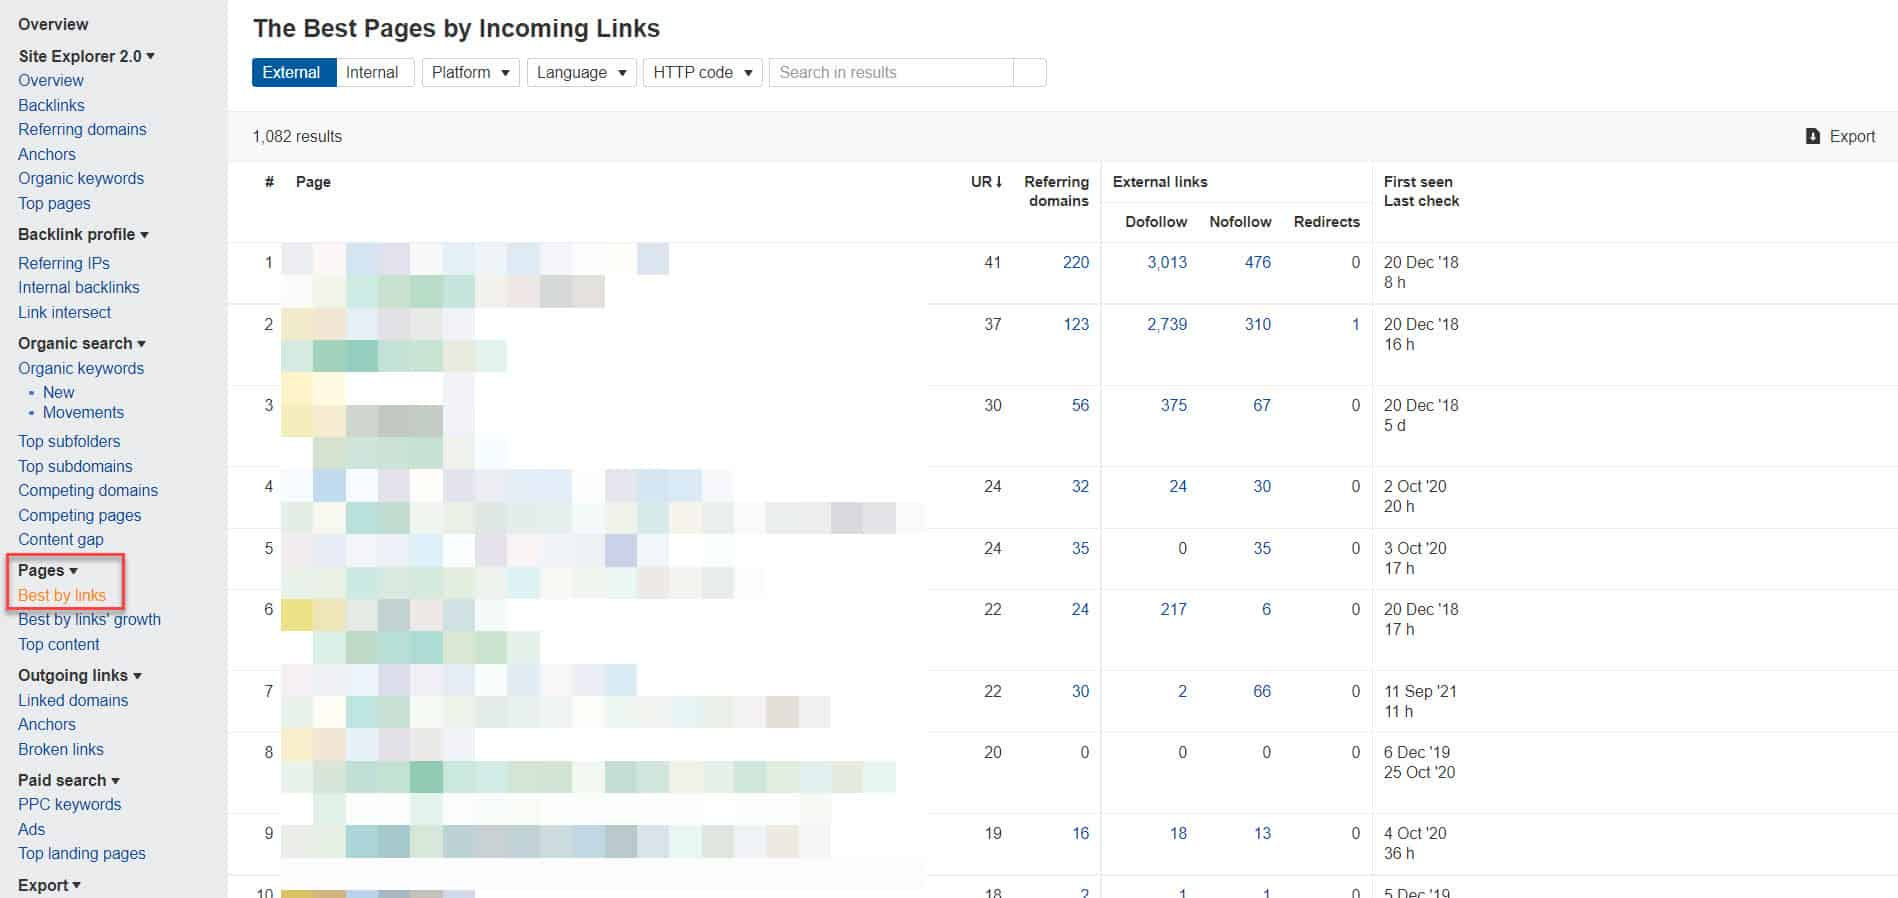 ahrefs best pages by incoming links1